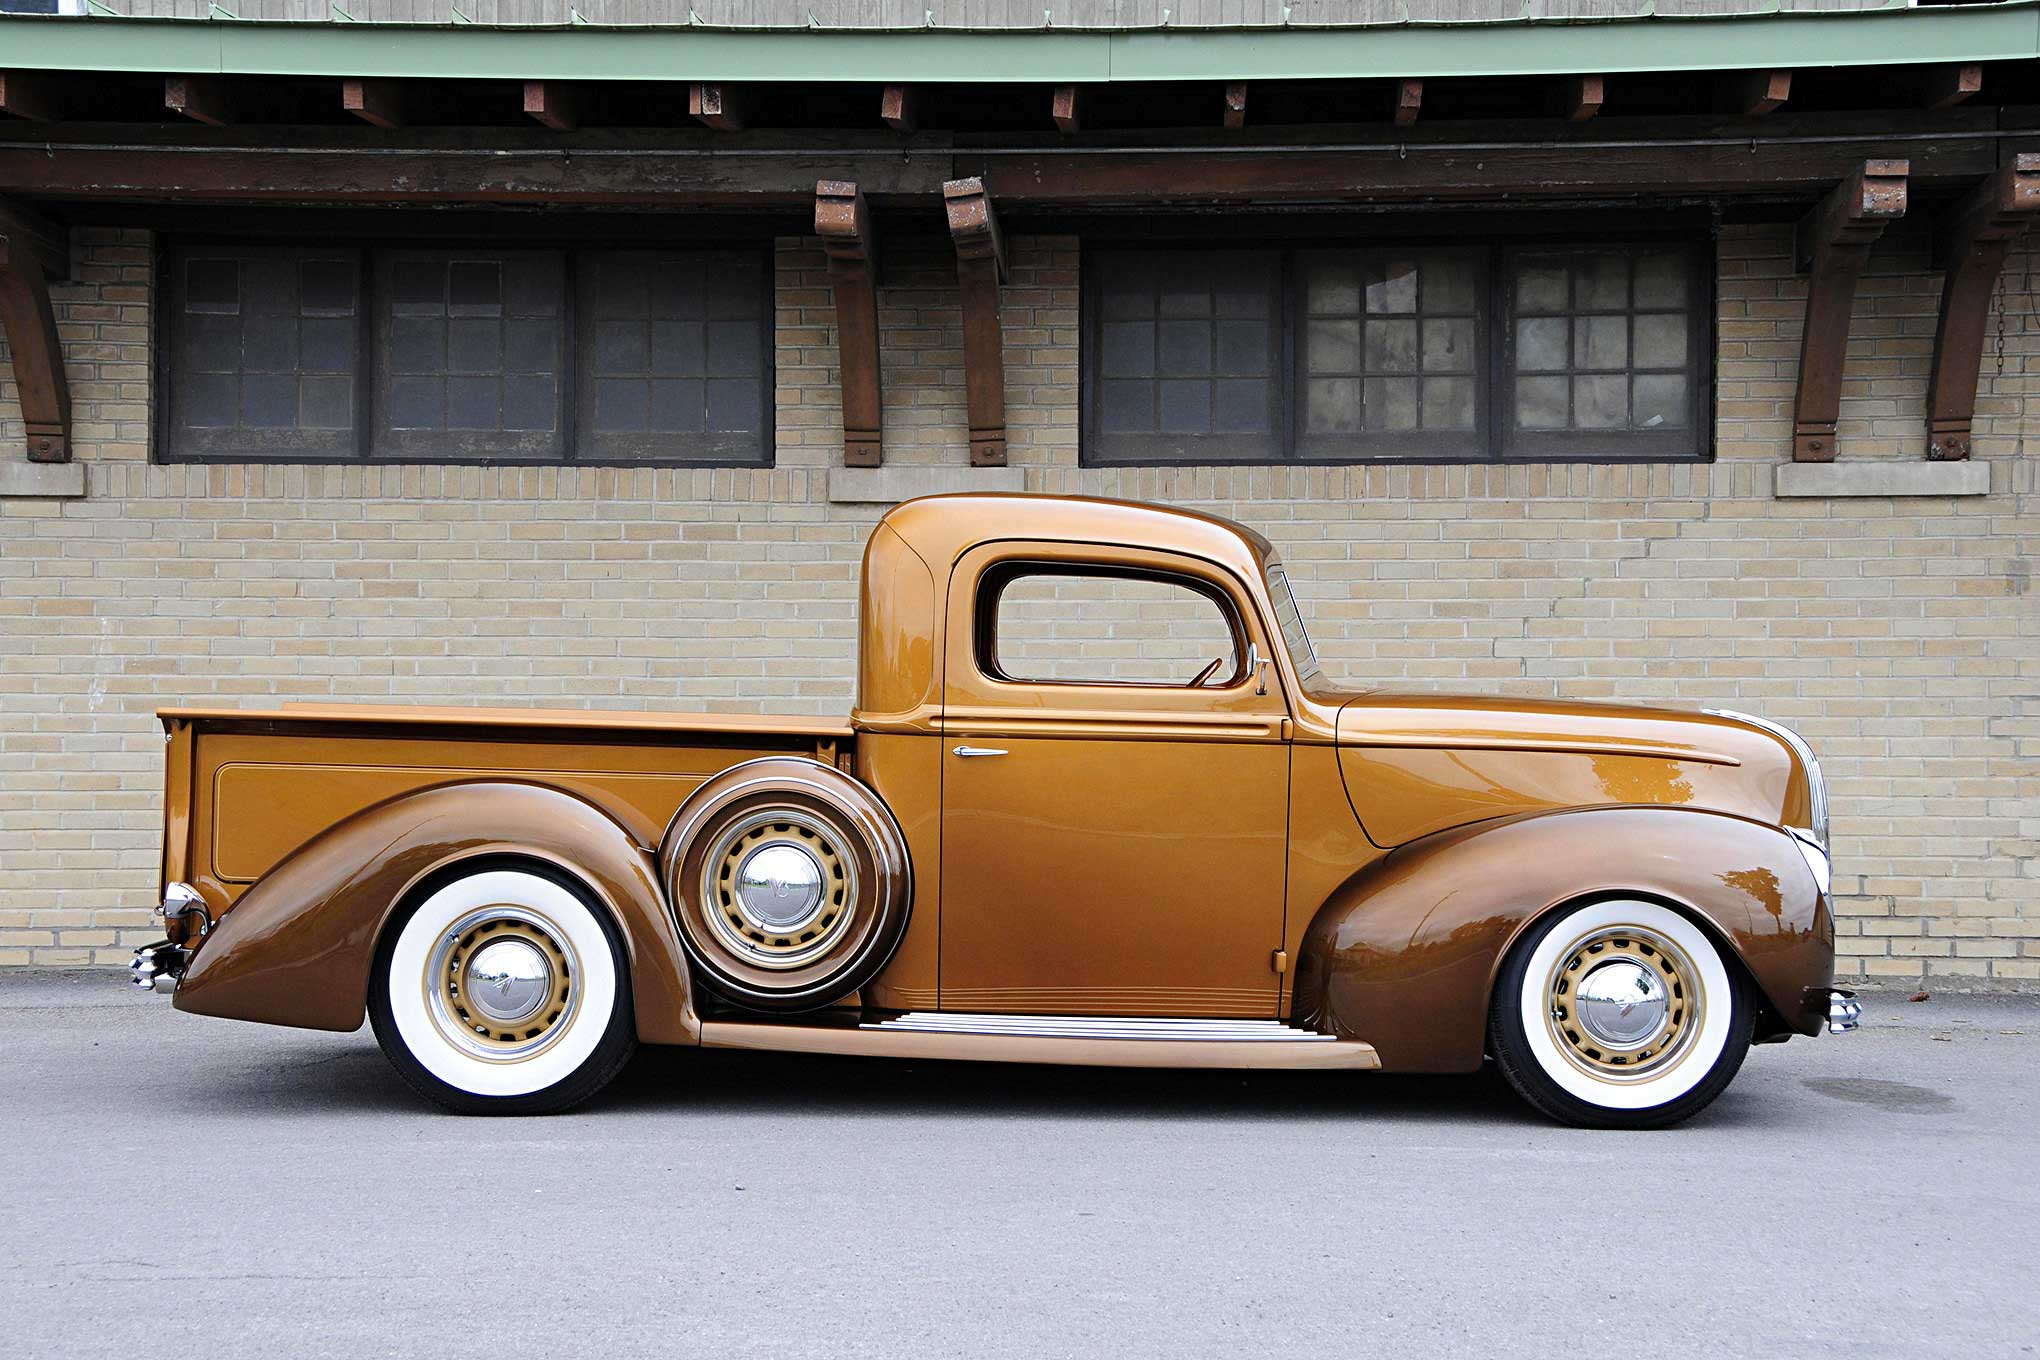 1941 Ford Pickup Passenger Side Profile Lowrider Truck Interior About This Editor